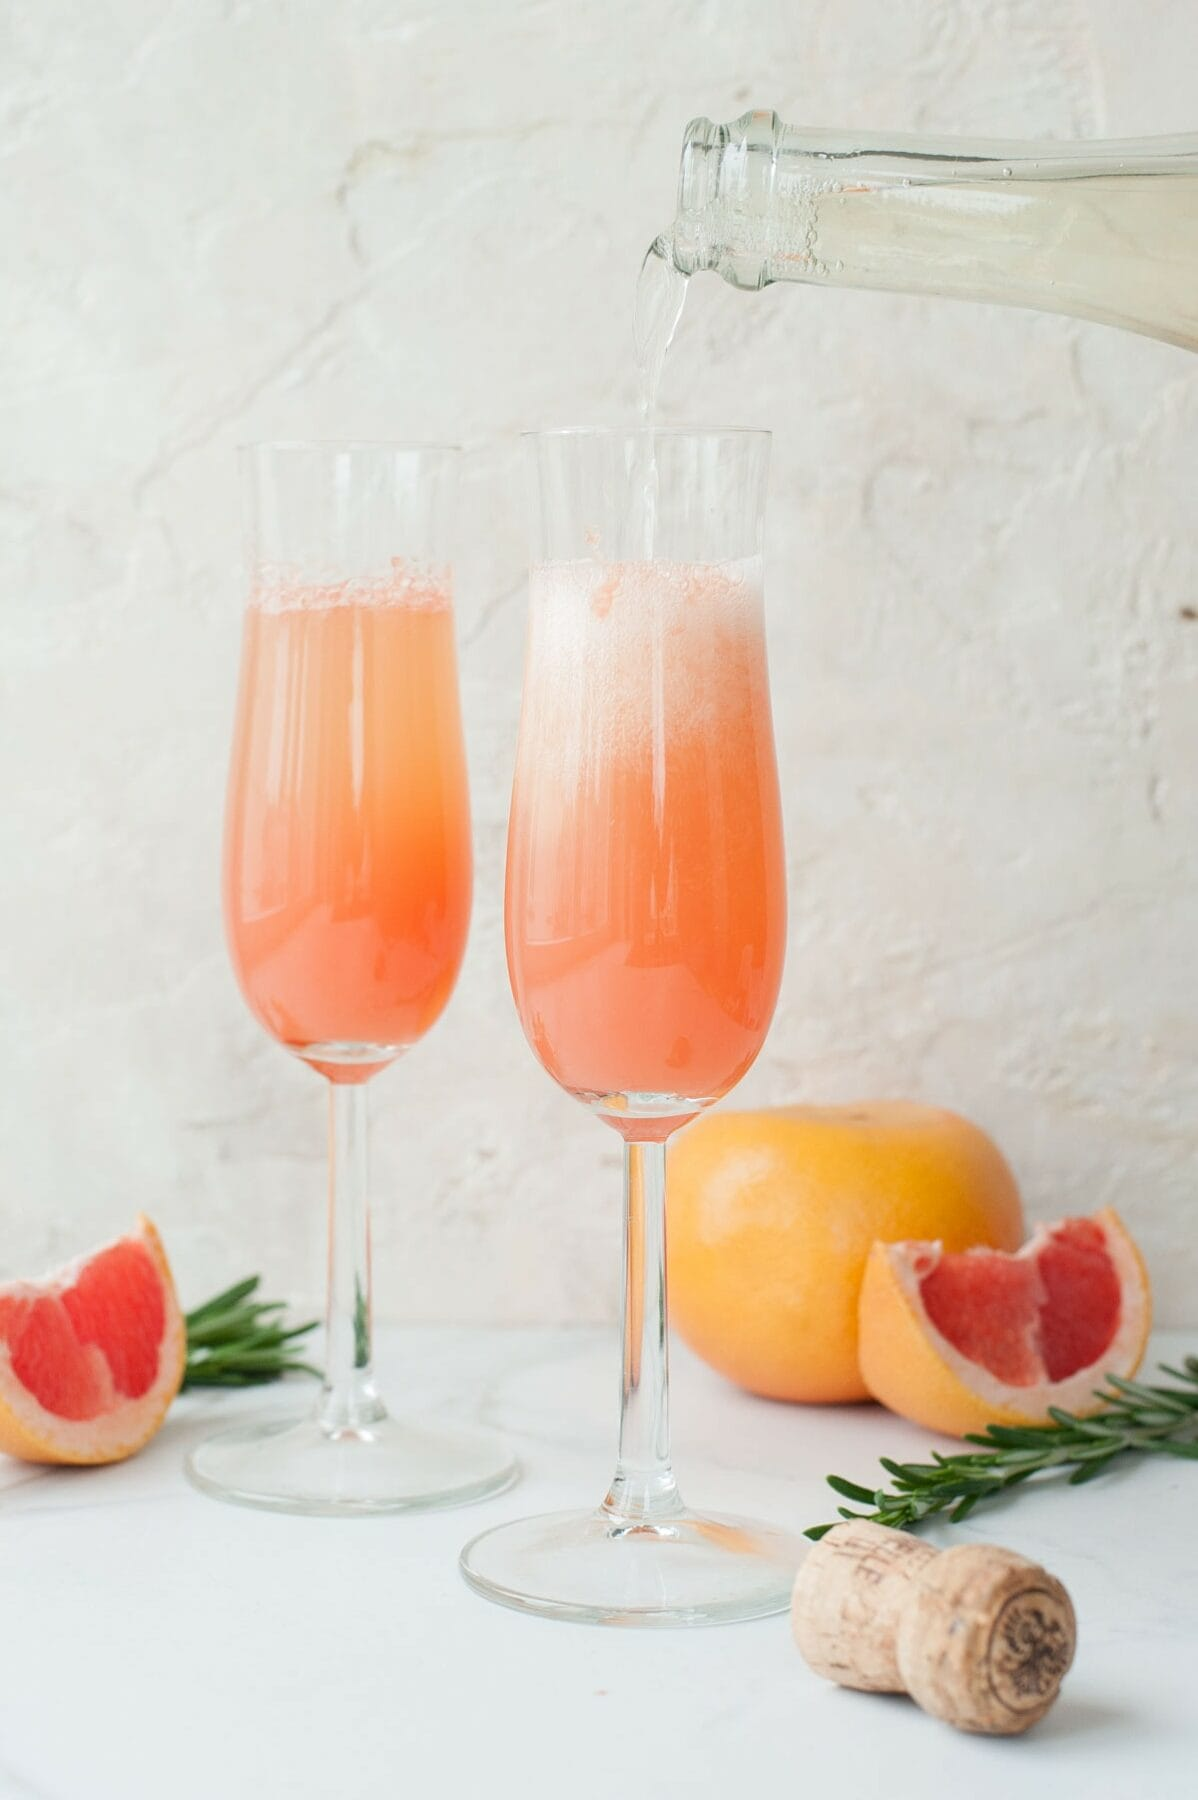 champagne is being poured over grapefruit juice in a champagne glass